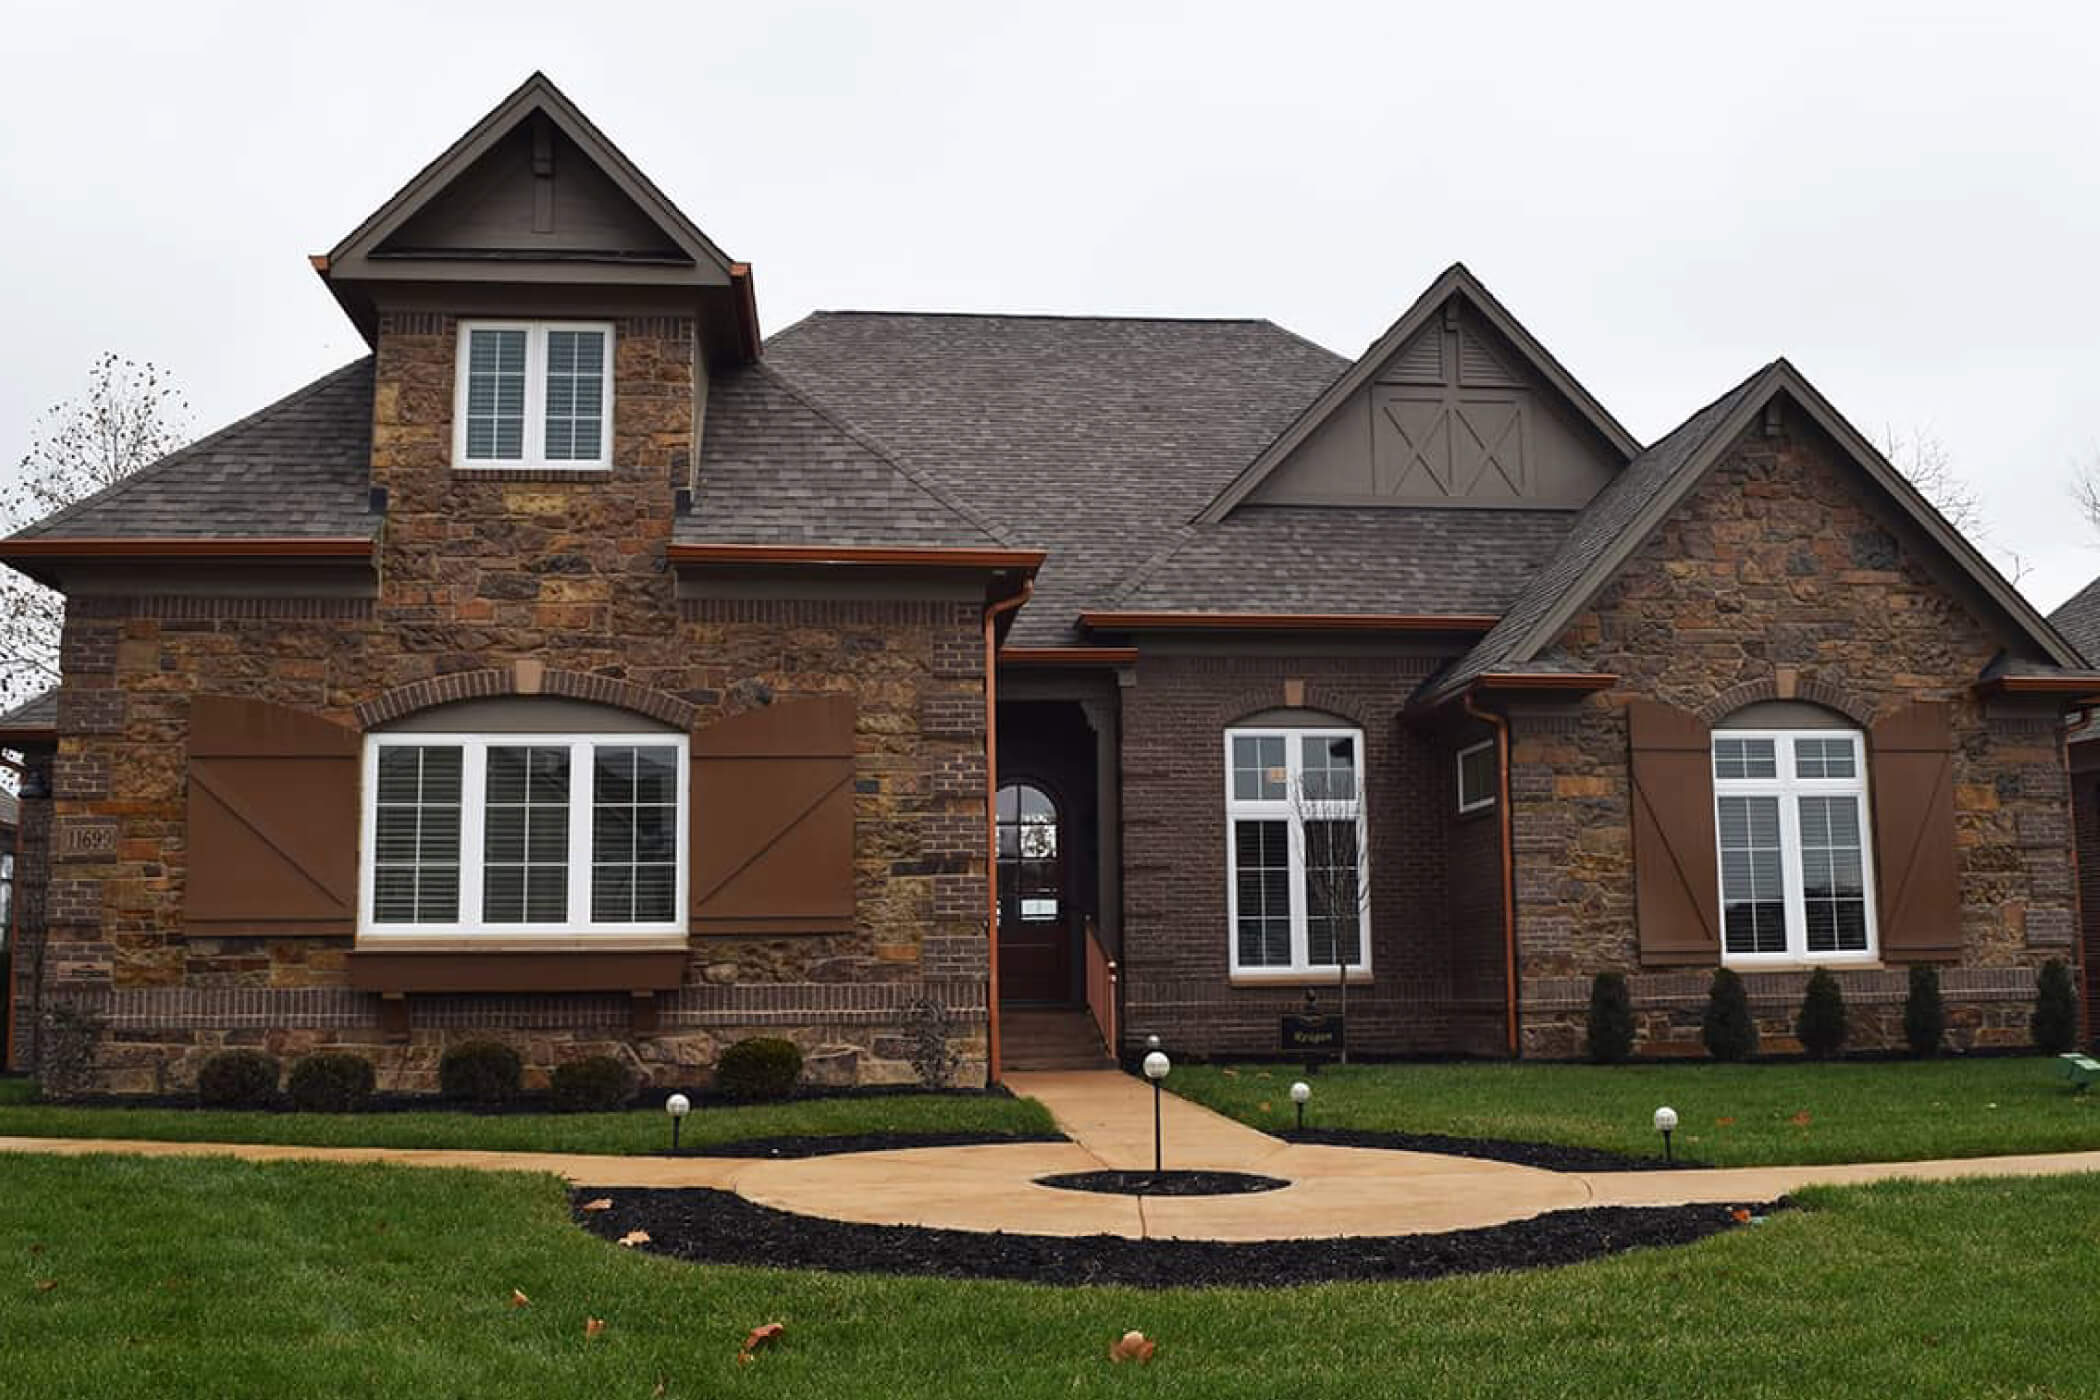 Brown brick, one-story custom home sitting on a grassy lot in Waterfront of West Clay